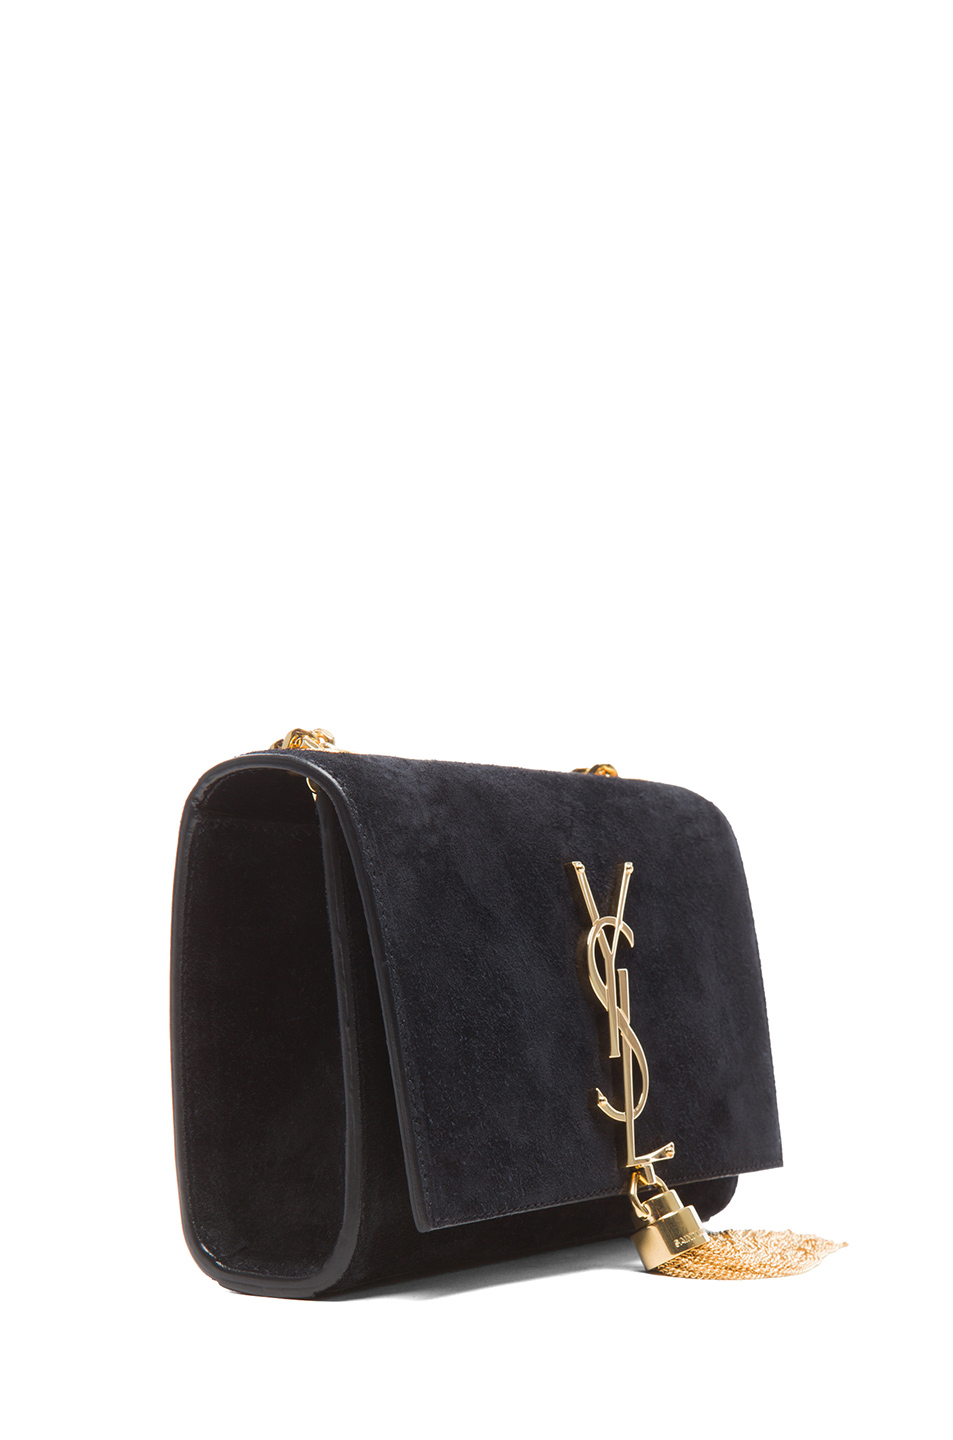 55fff68bed3 Saint Laurent Small Monogramme Tassel Chain Bag in Black - Lyst